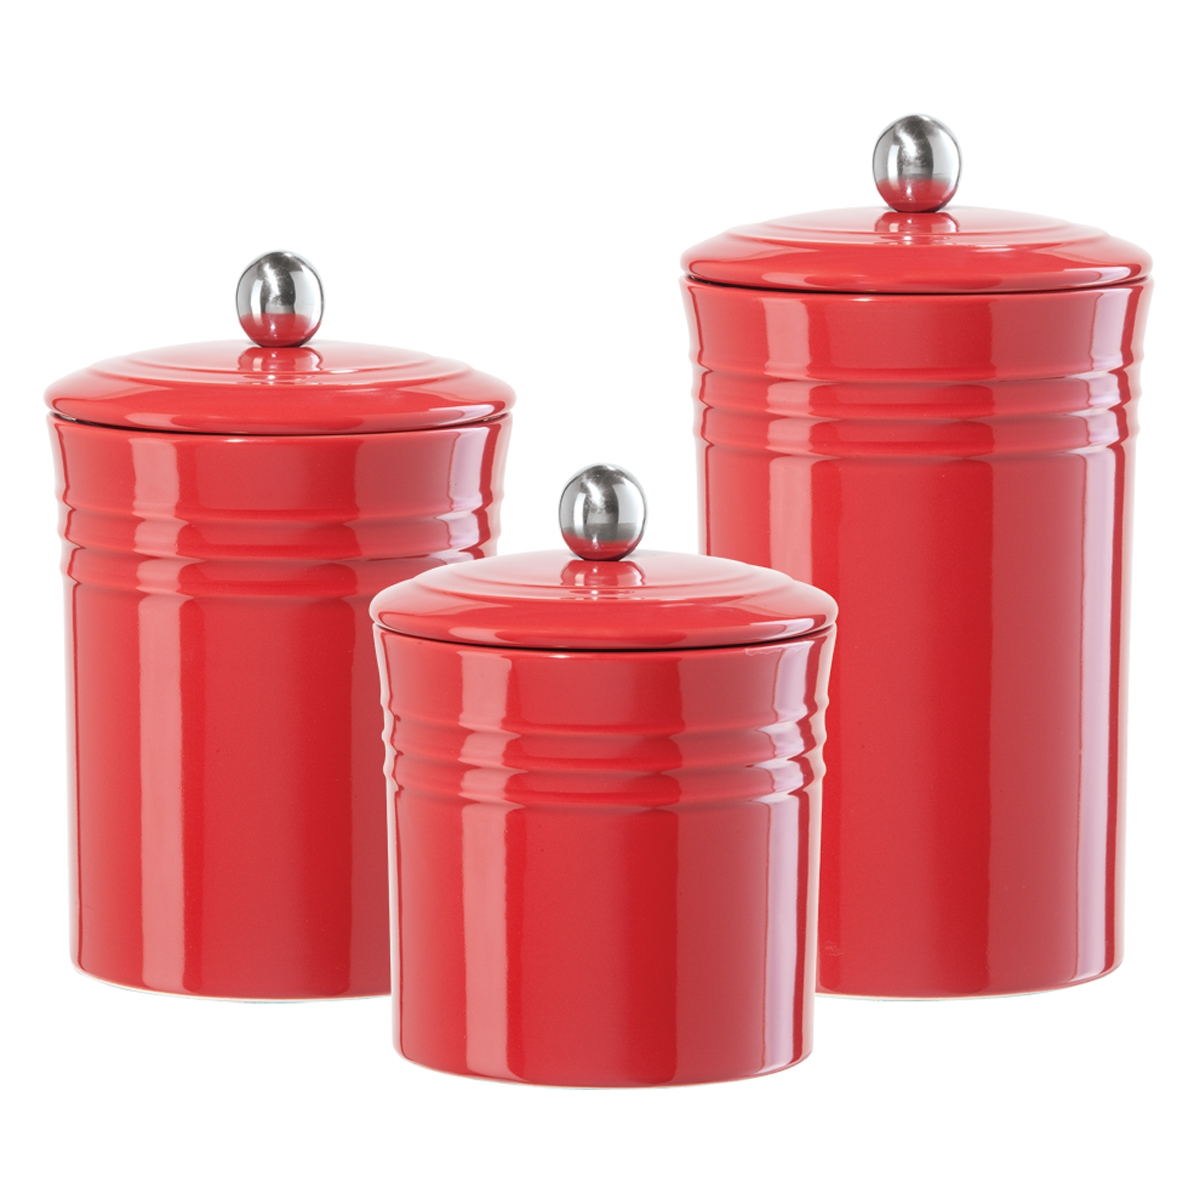 gift amp home today storage canisters for the kitchen 1000 ideas about canister sets on pinterest coffee